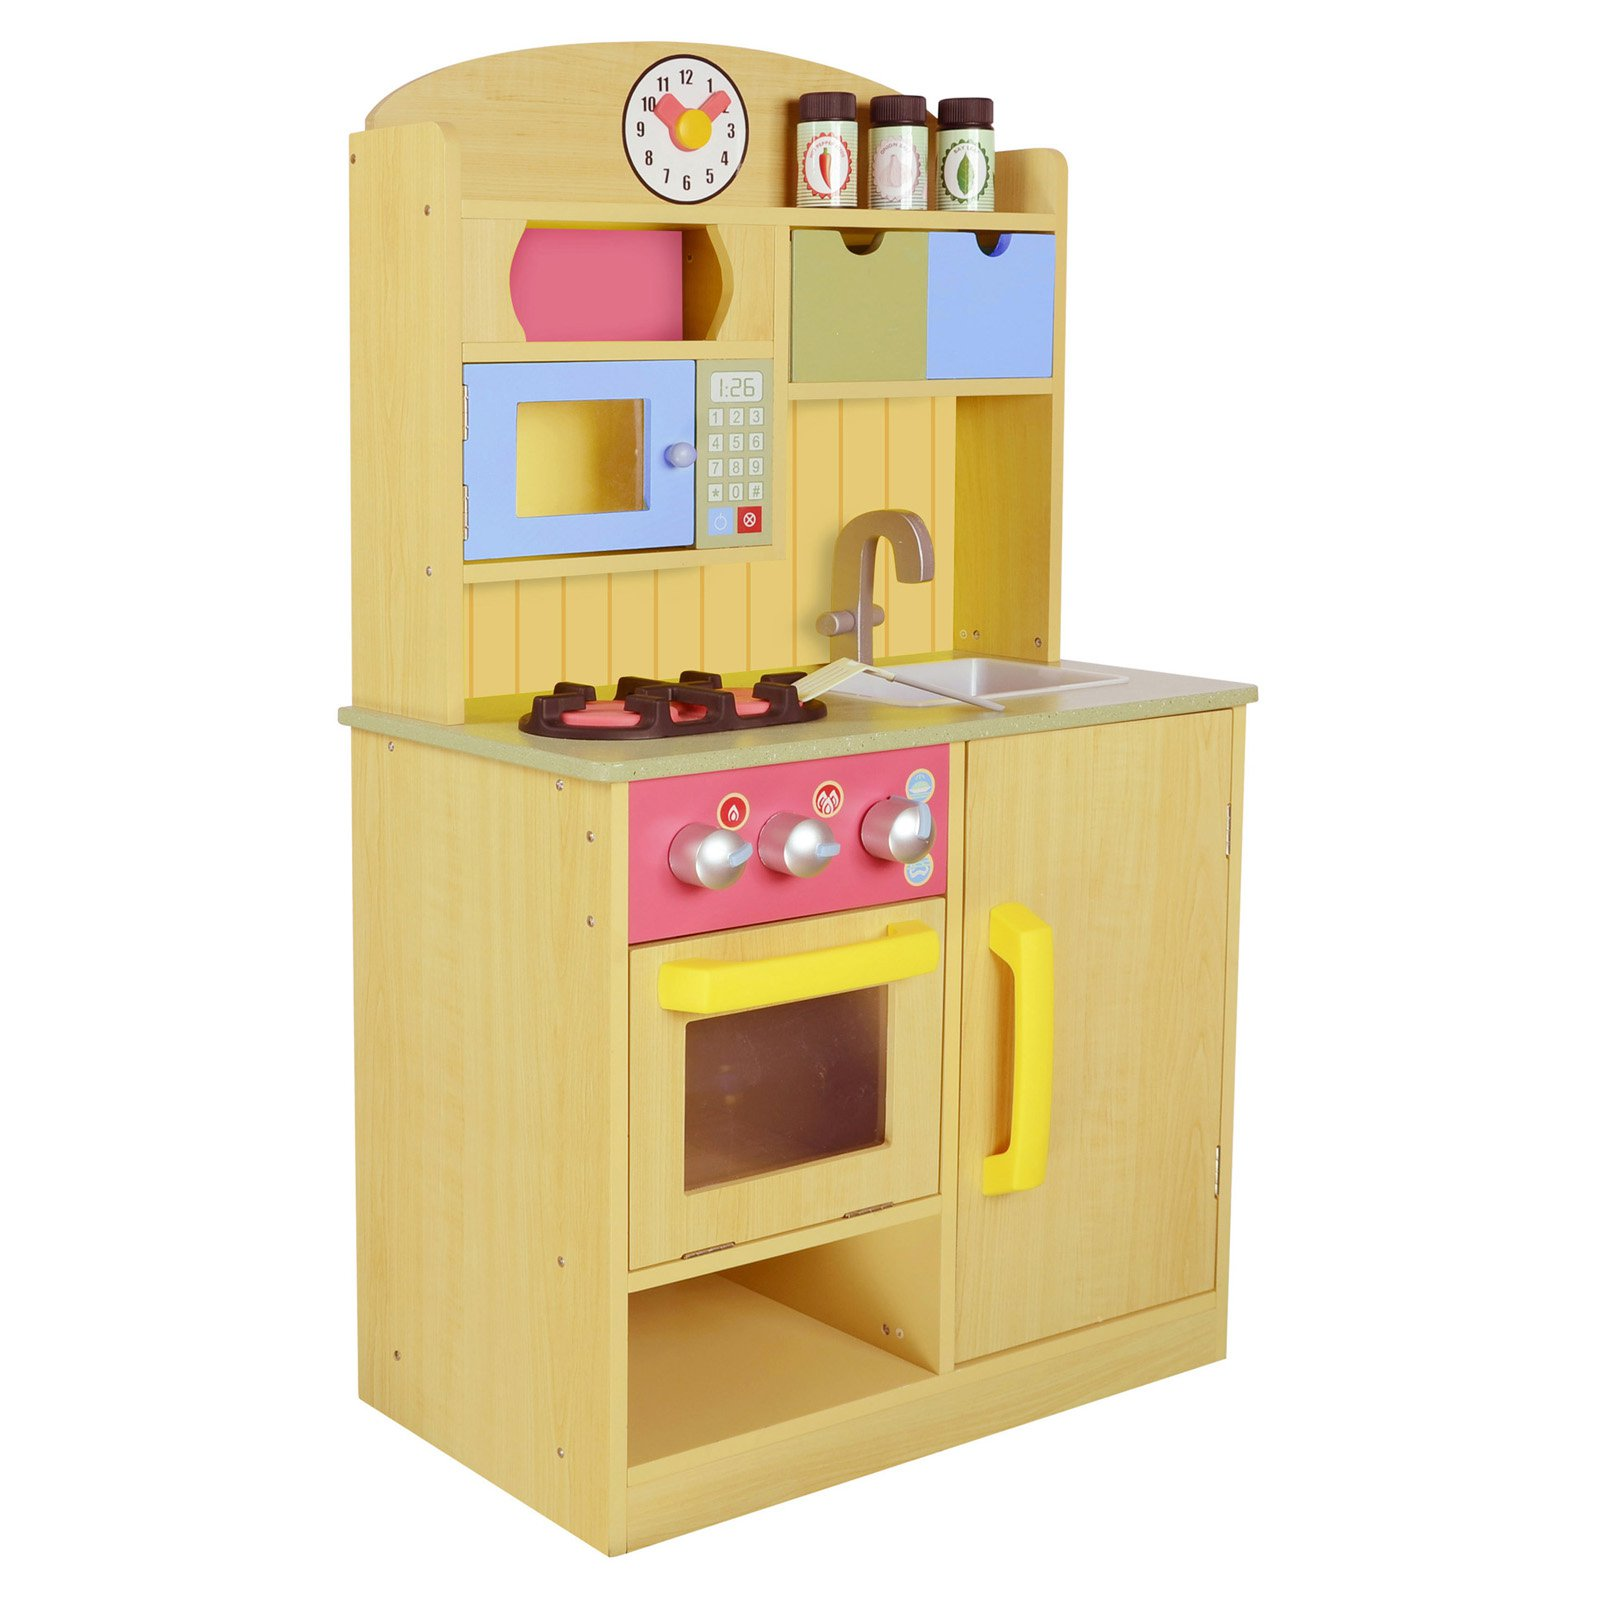 Teamson Kids   Little Chef Wooden Toy Play Kitchen With Accessories    Burlywood   Walmart.com